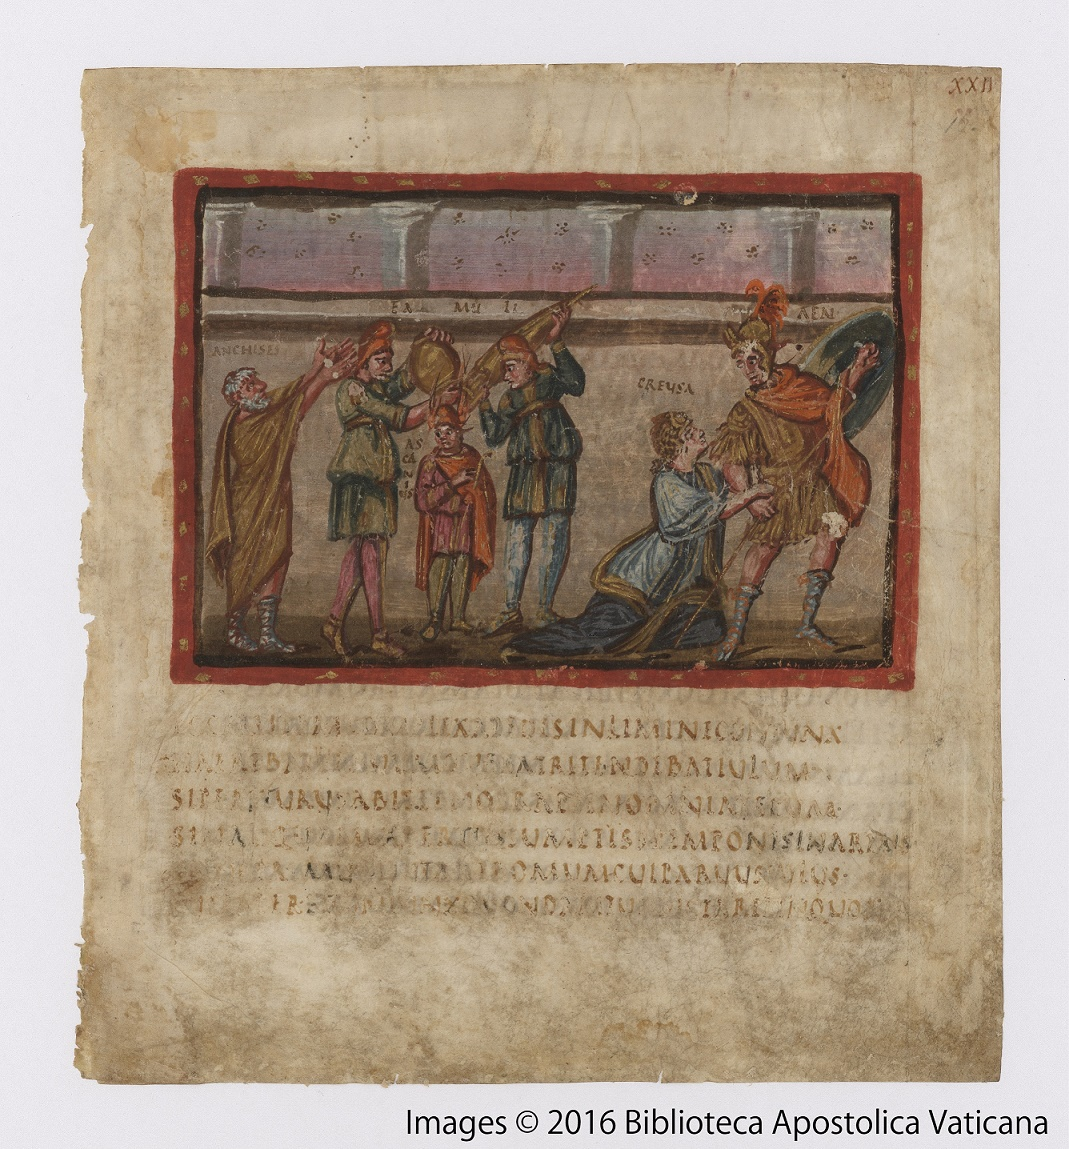 Southern Europe: Vatican Library digitises 1,600 year-old manuscript containing works of Virgil